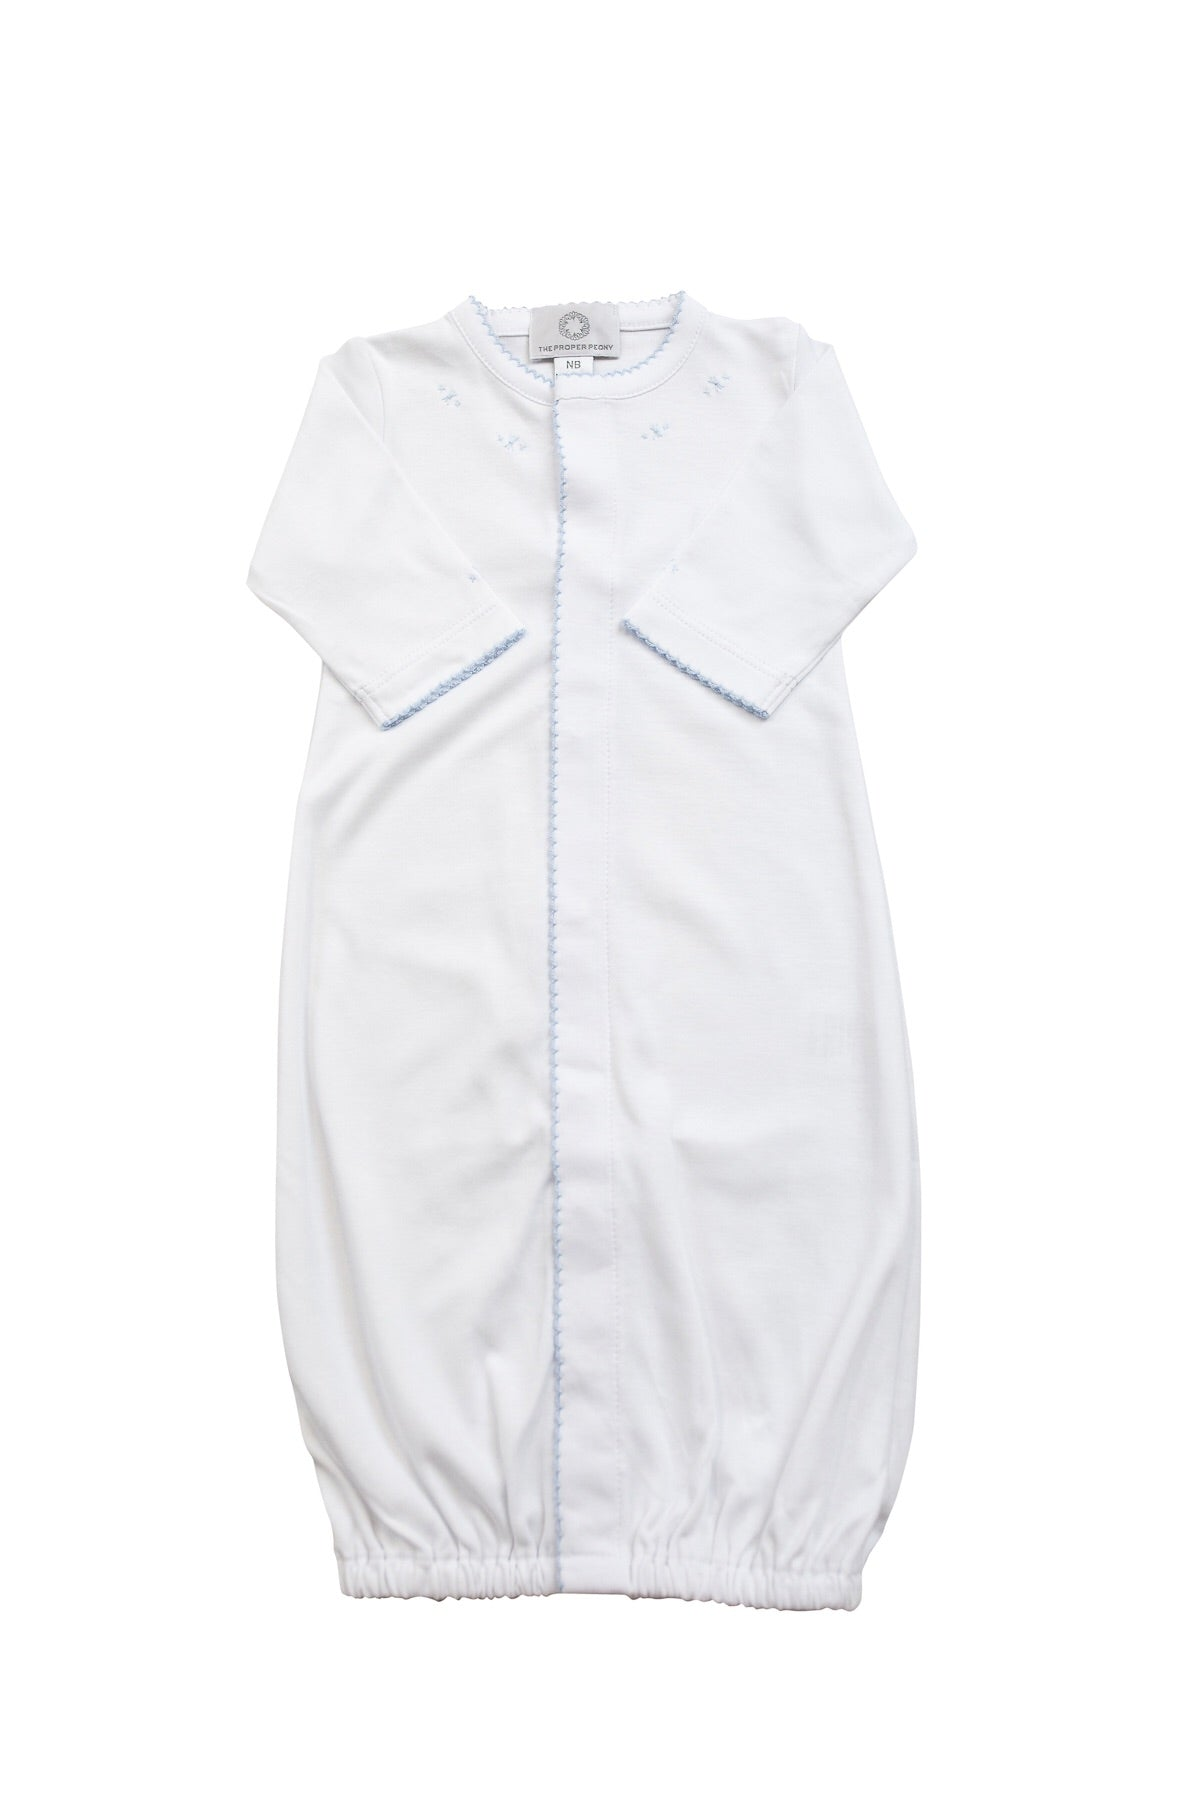 The Proper Peony Pima cotton white with blue converter gown